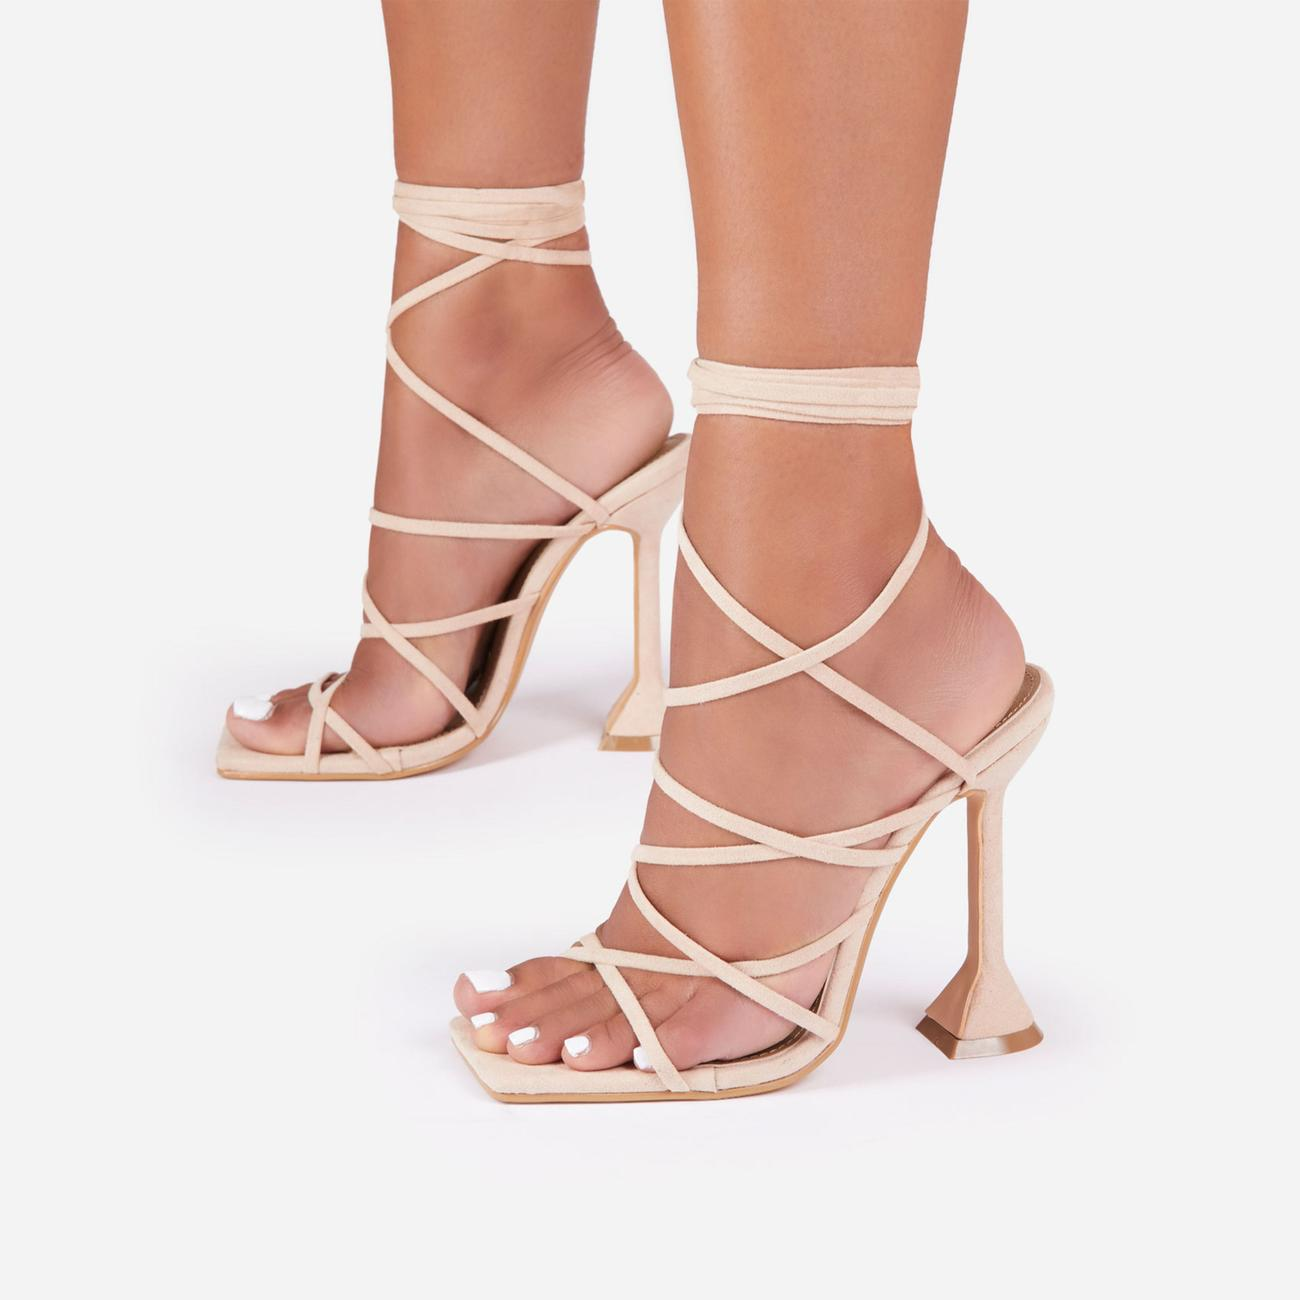 Influence Strappy Lace Up Square Toe Pyramid Heel In Nude Faux Suede Image 3